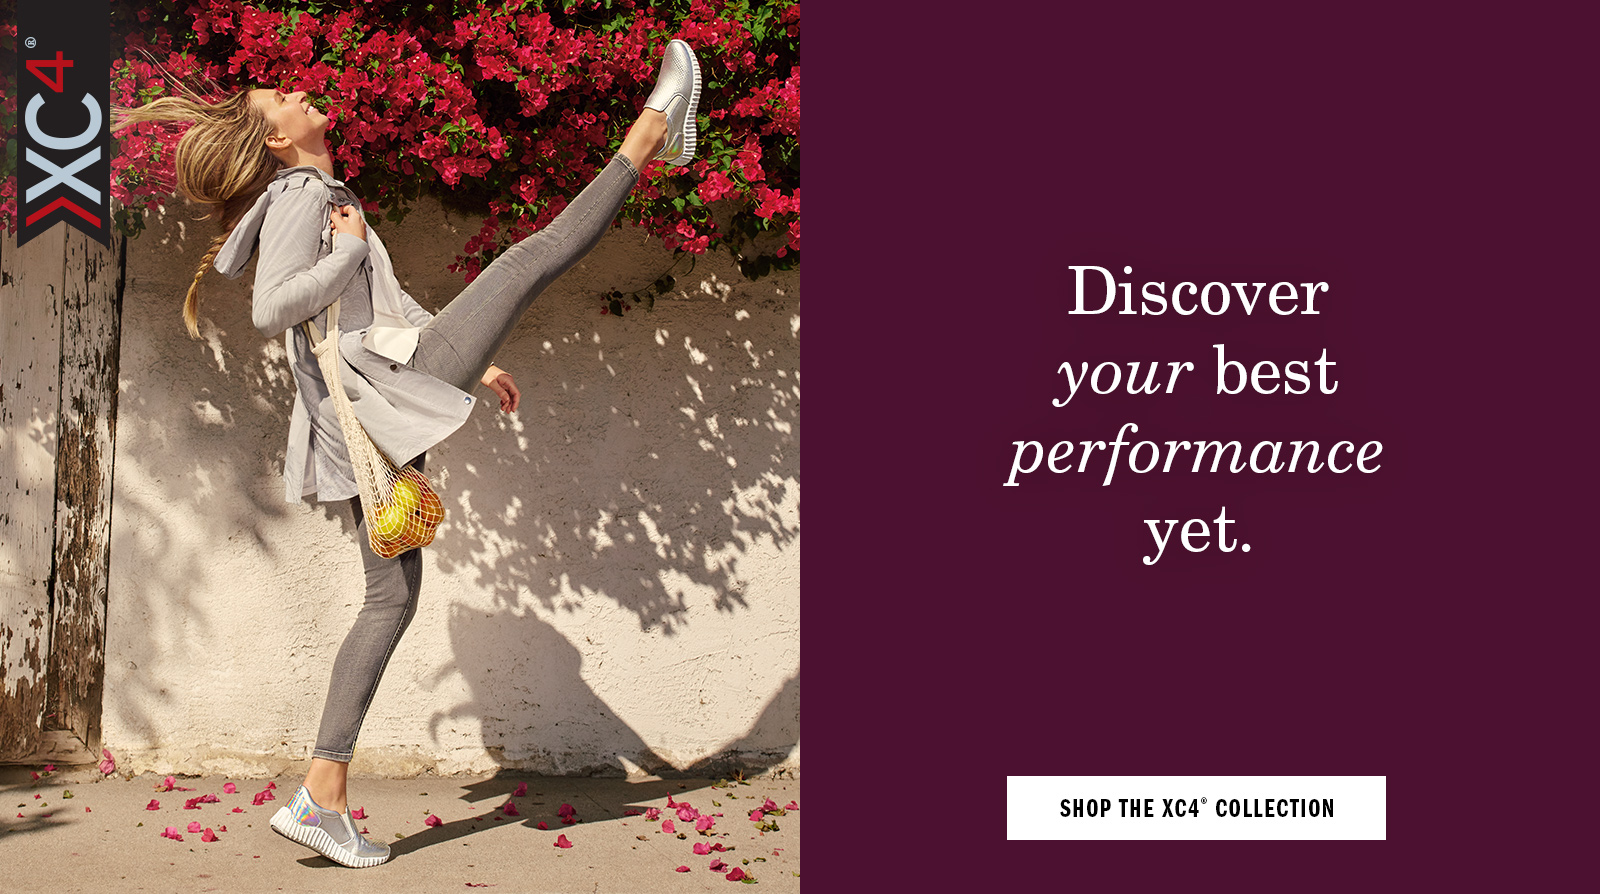 Discover your best performance yet. - Shop Women's Shoes and Apparel